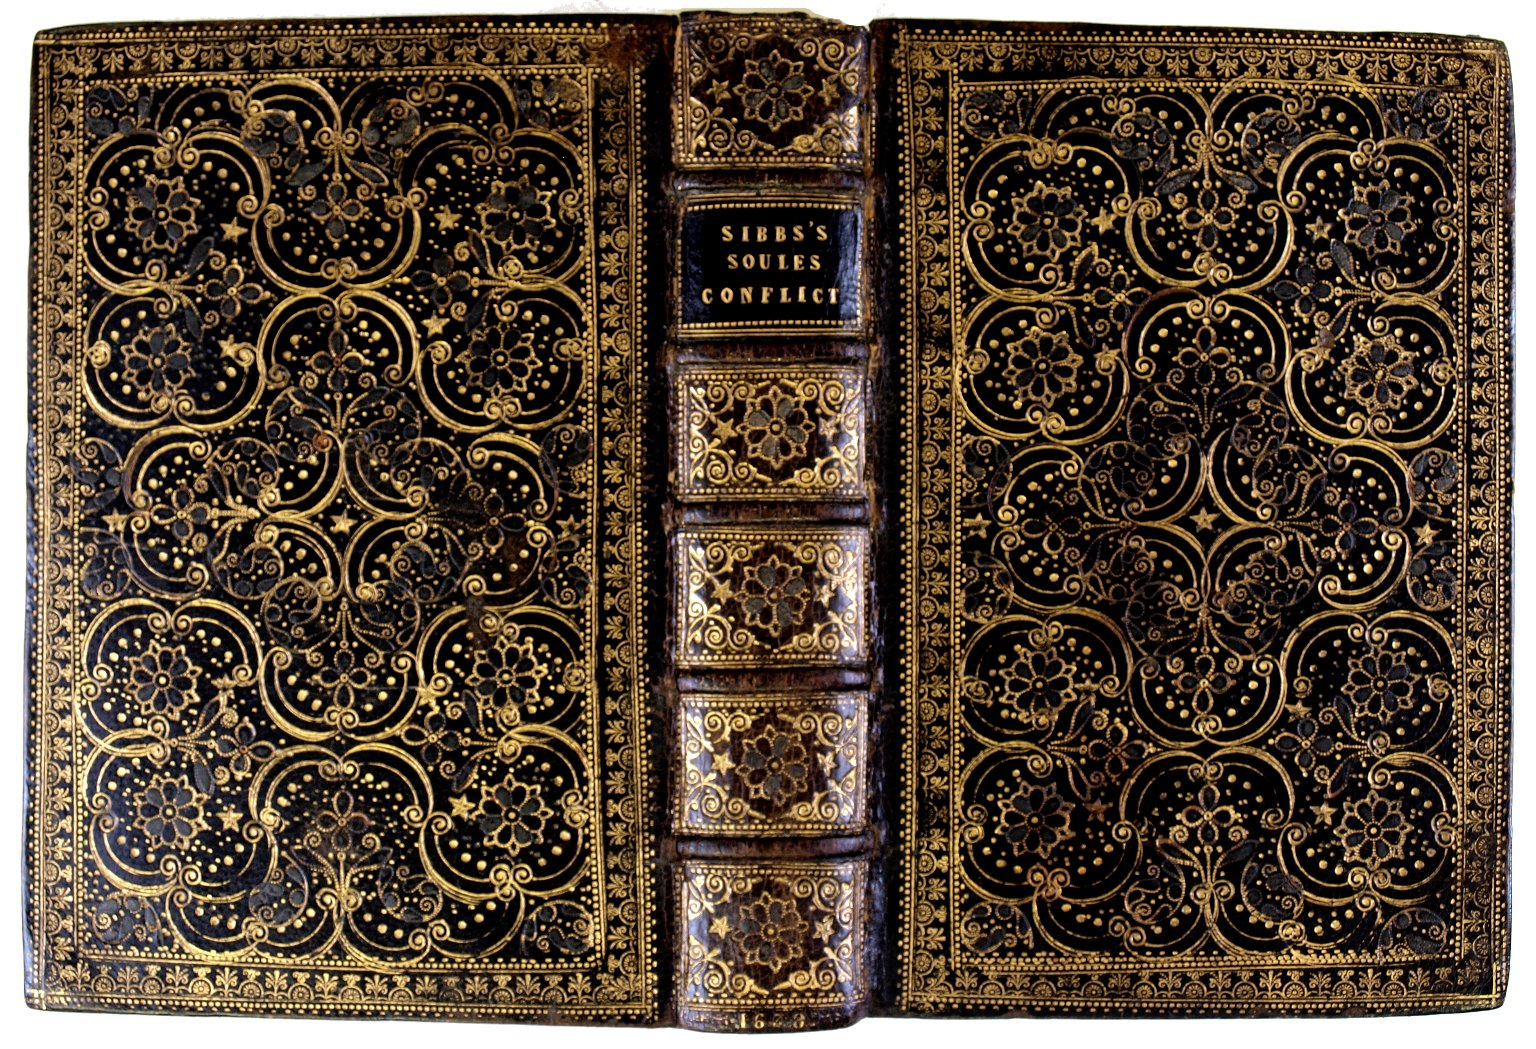 Covers, STC 22511.